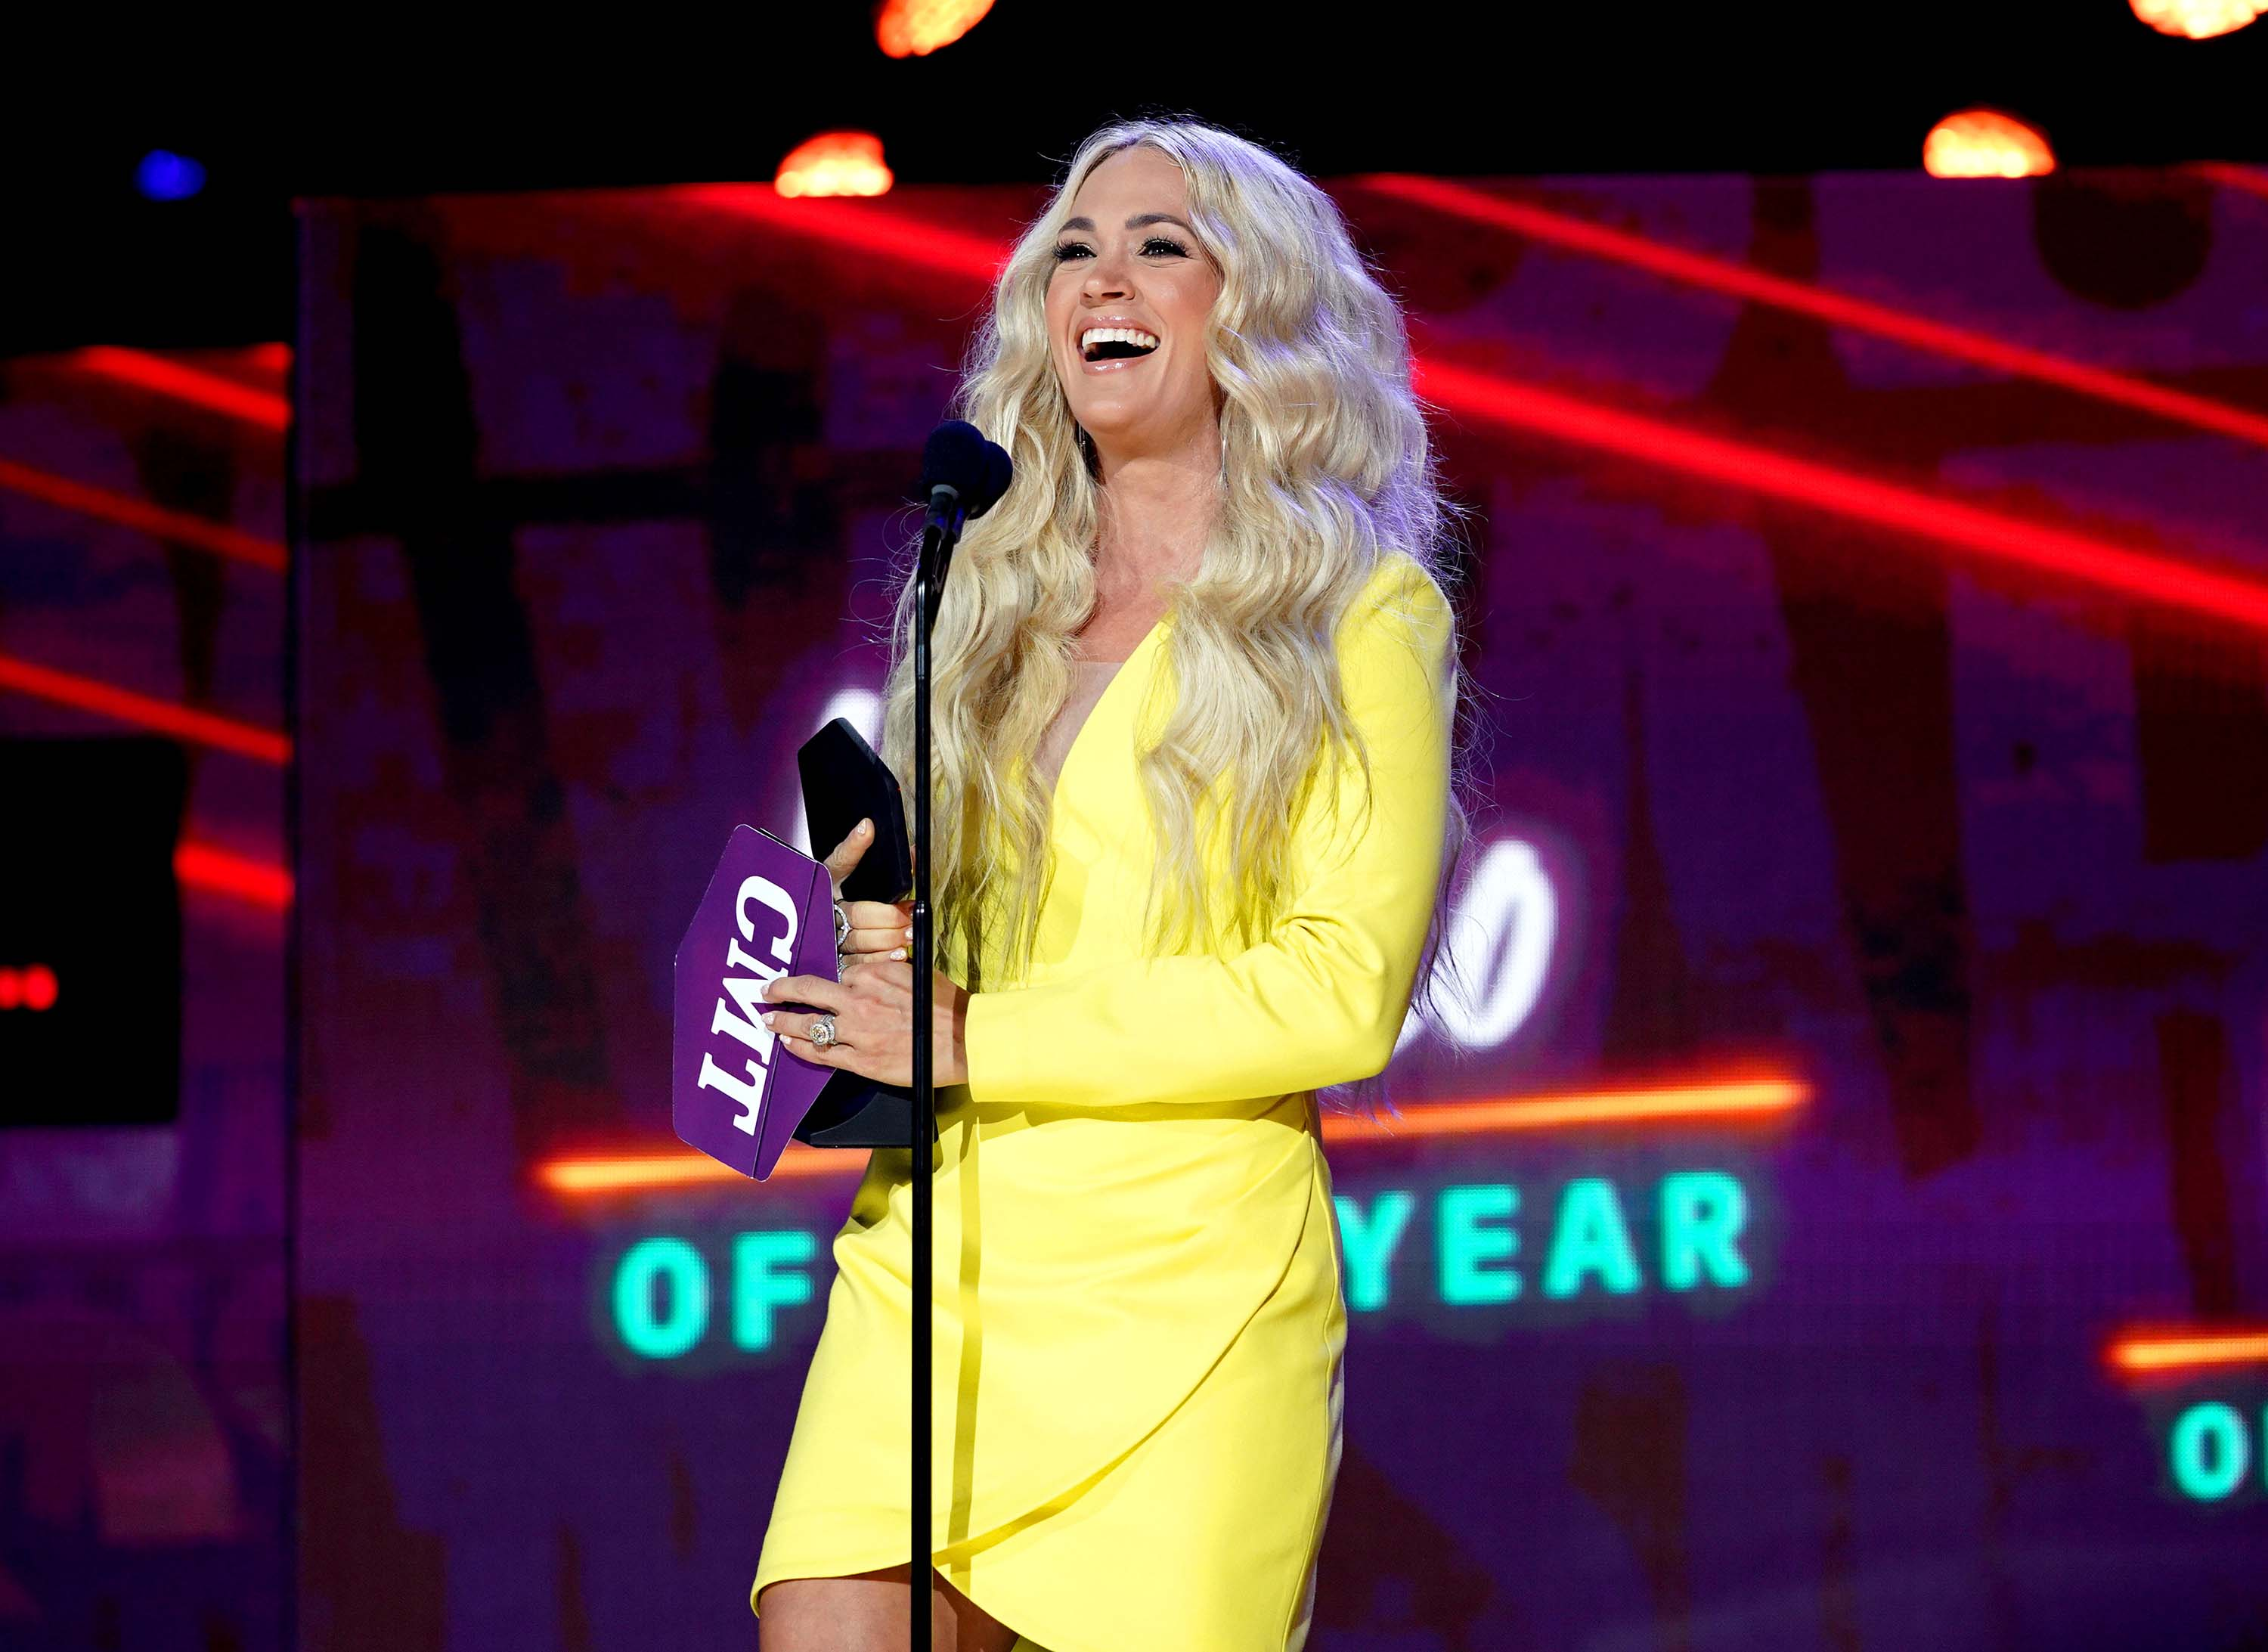 Carrie Underwood and John Legend win Video of the Year at CMT Music Awards